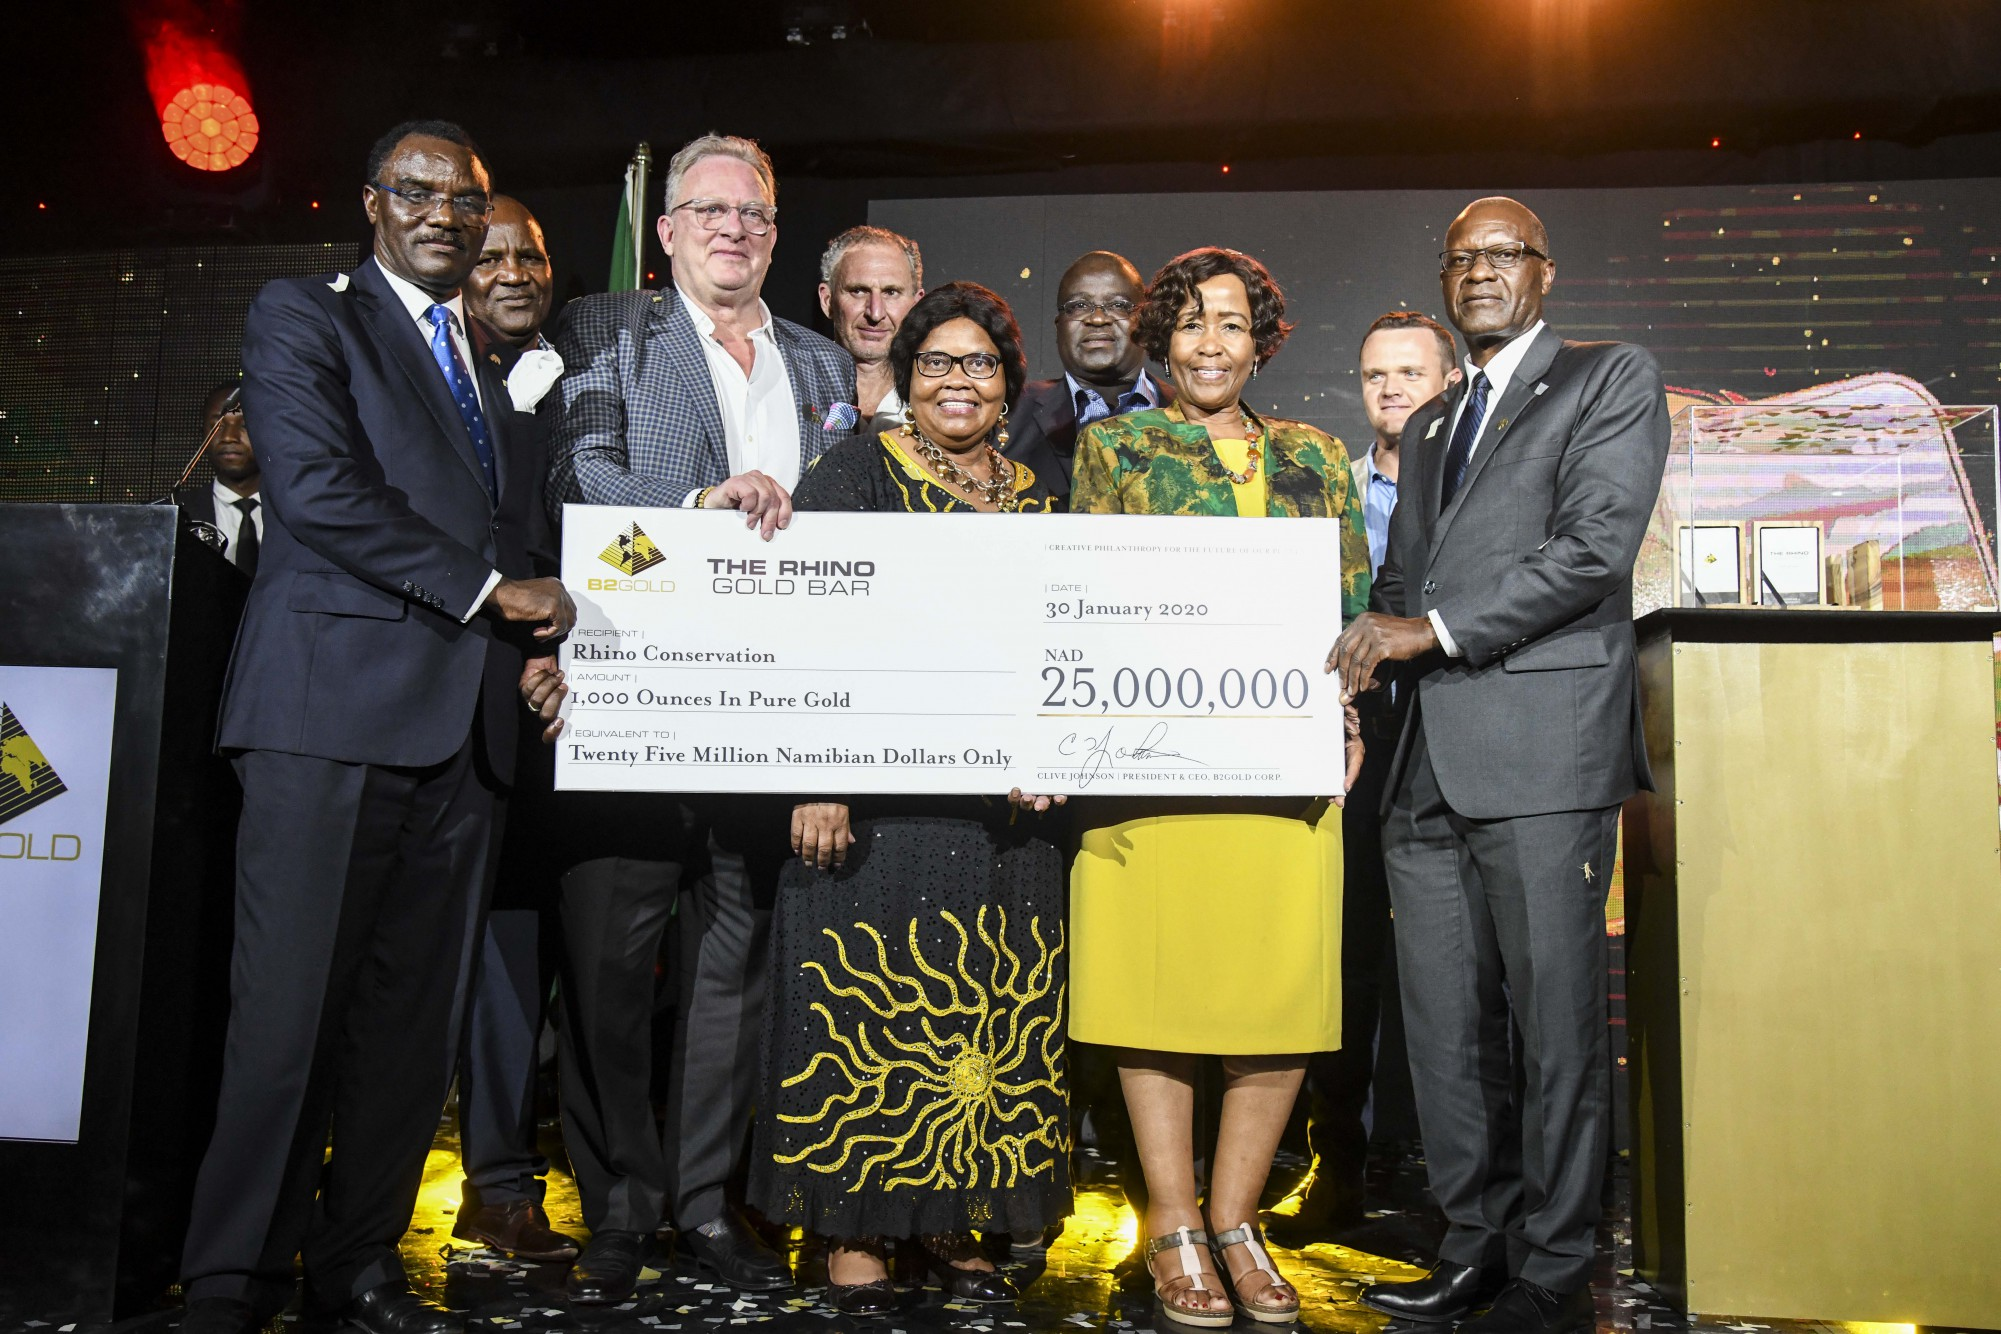 Front (left to right): Dr. Leake Hangala ( Director, B2Gold Namibia Proprietary Limited), Clive Johnson (President, CEO & Director, B2Gold Corp.), Honorable Bernadette Jagger (Deputy Minister of Environment and Tourism), Inge Zaamwani-Kamwi (Adviser to the President of the Republic of Namibia, Dr Hage Geingob) and Tom Alweendo (Minister of Mines and Energy) Back (left to right): Simson Uri-Khob (CEO, Save the Rhino Trust), Mark Dawe (Country Manager and Managing Director – Namibia, B2Gold Corp.), John Kasaona (Executive Director, Integrated Rural Development and Nature Conservation), and John Roos (Reporting & Projects- Manager, B2Gold Corp.)